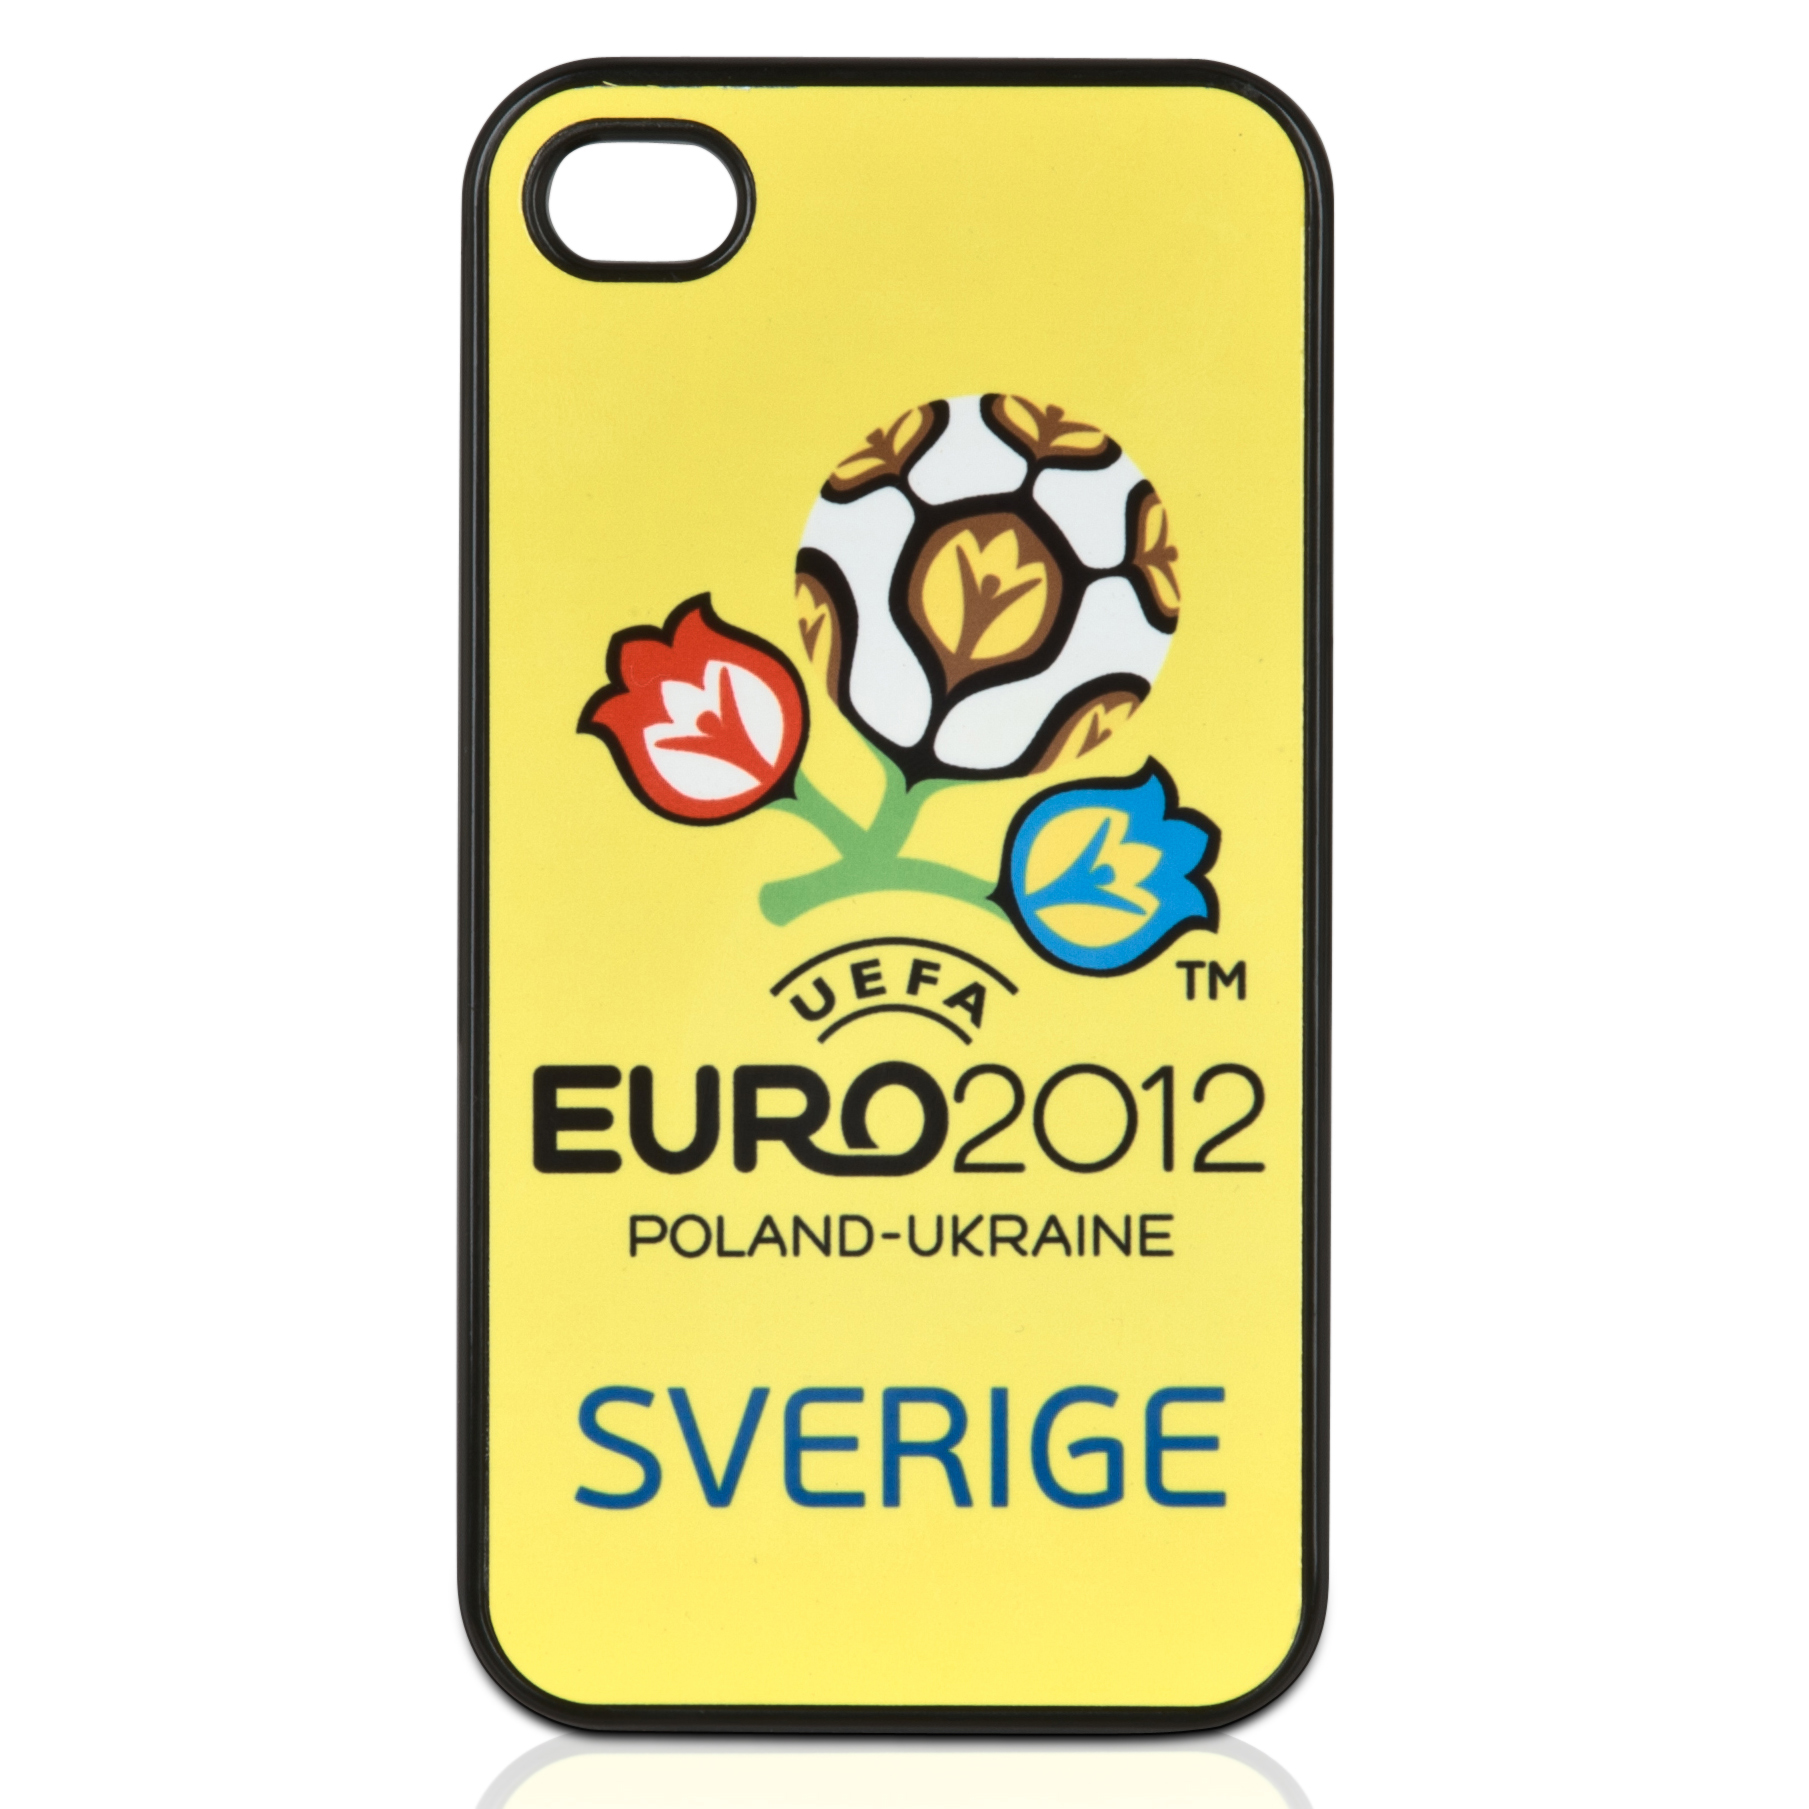 Sweden Country Iphone 4 Cover - Sweden